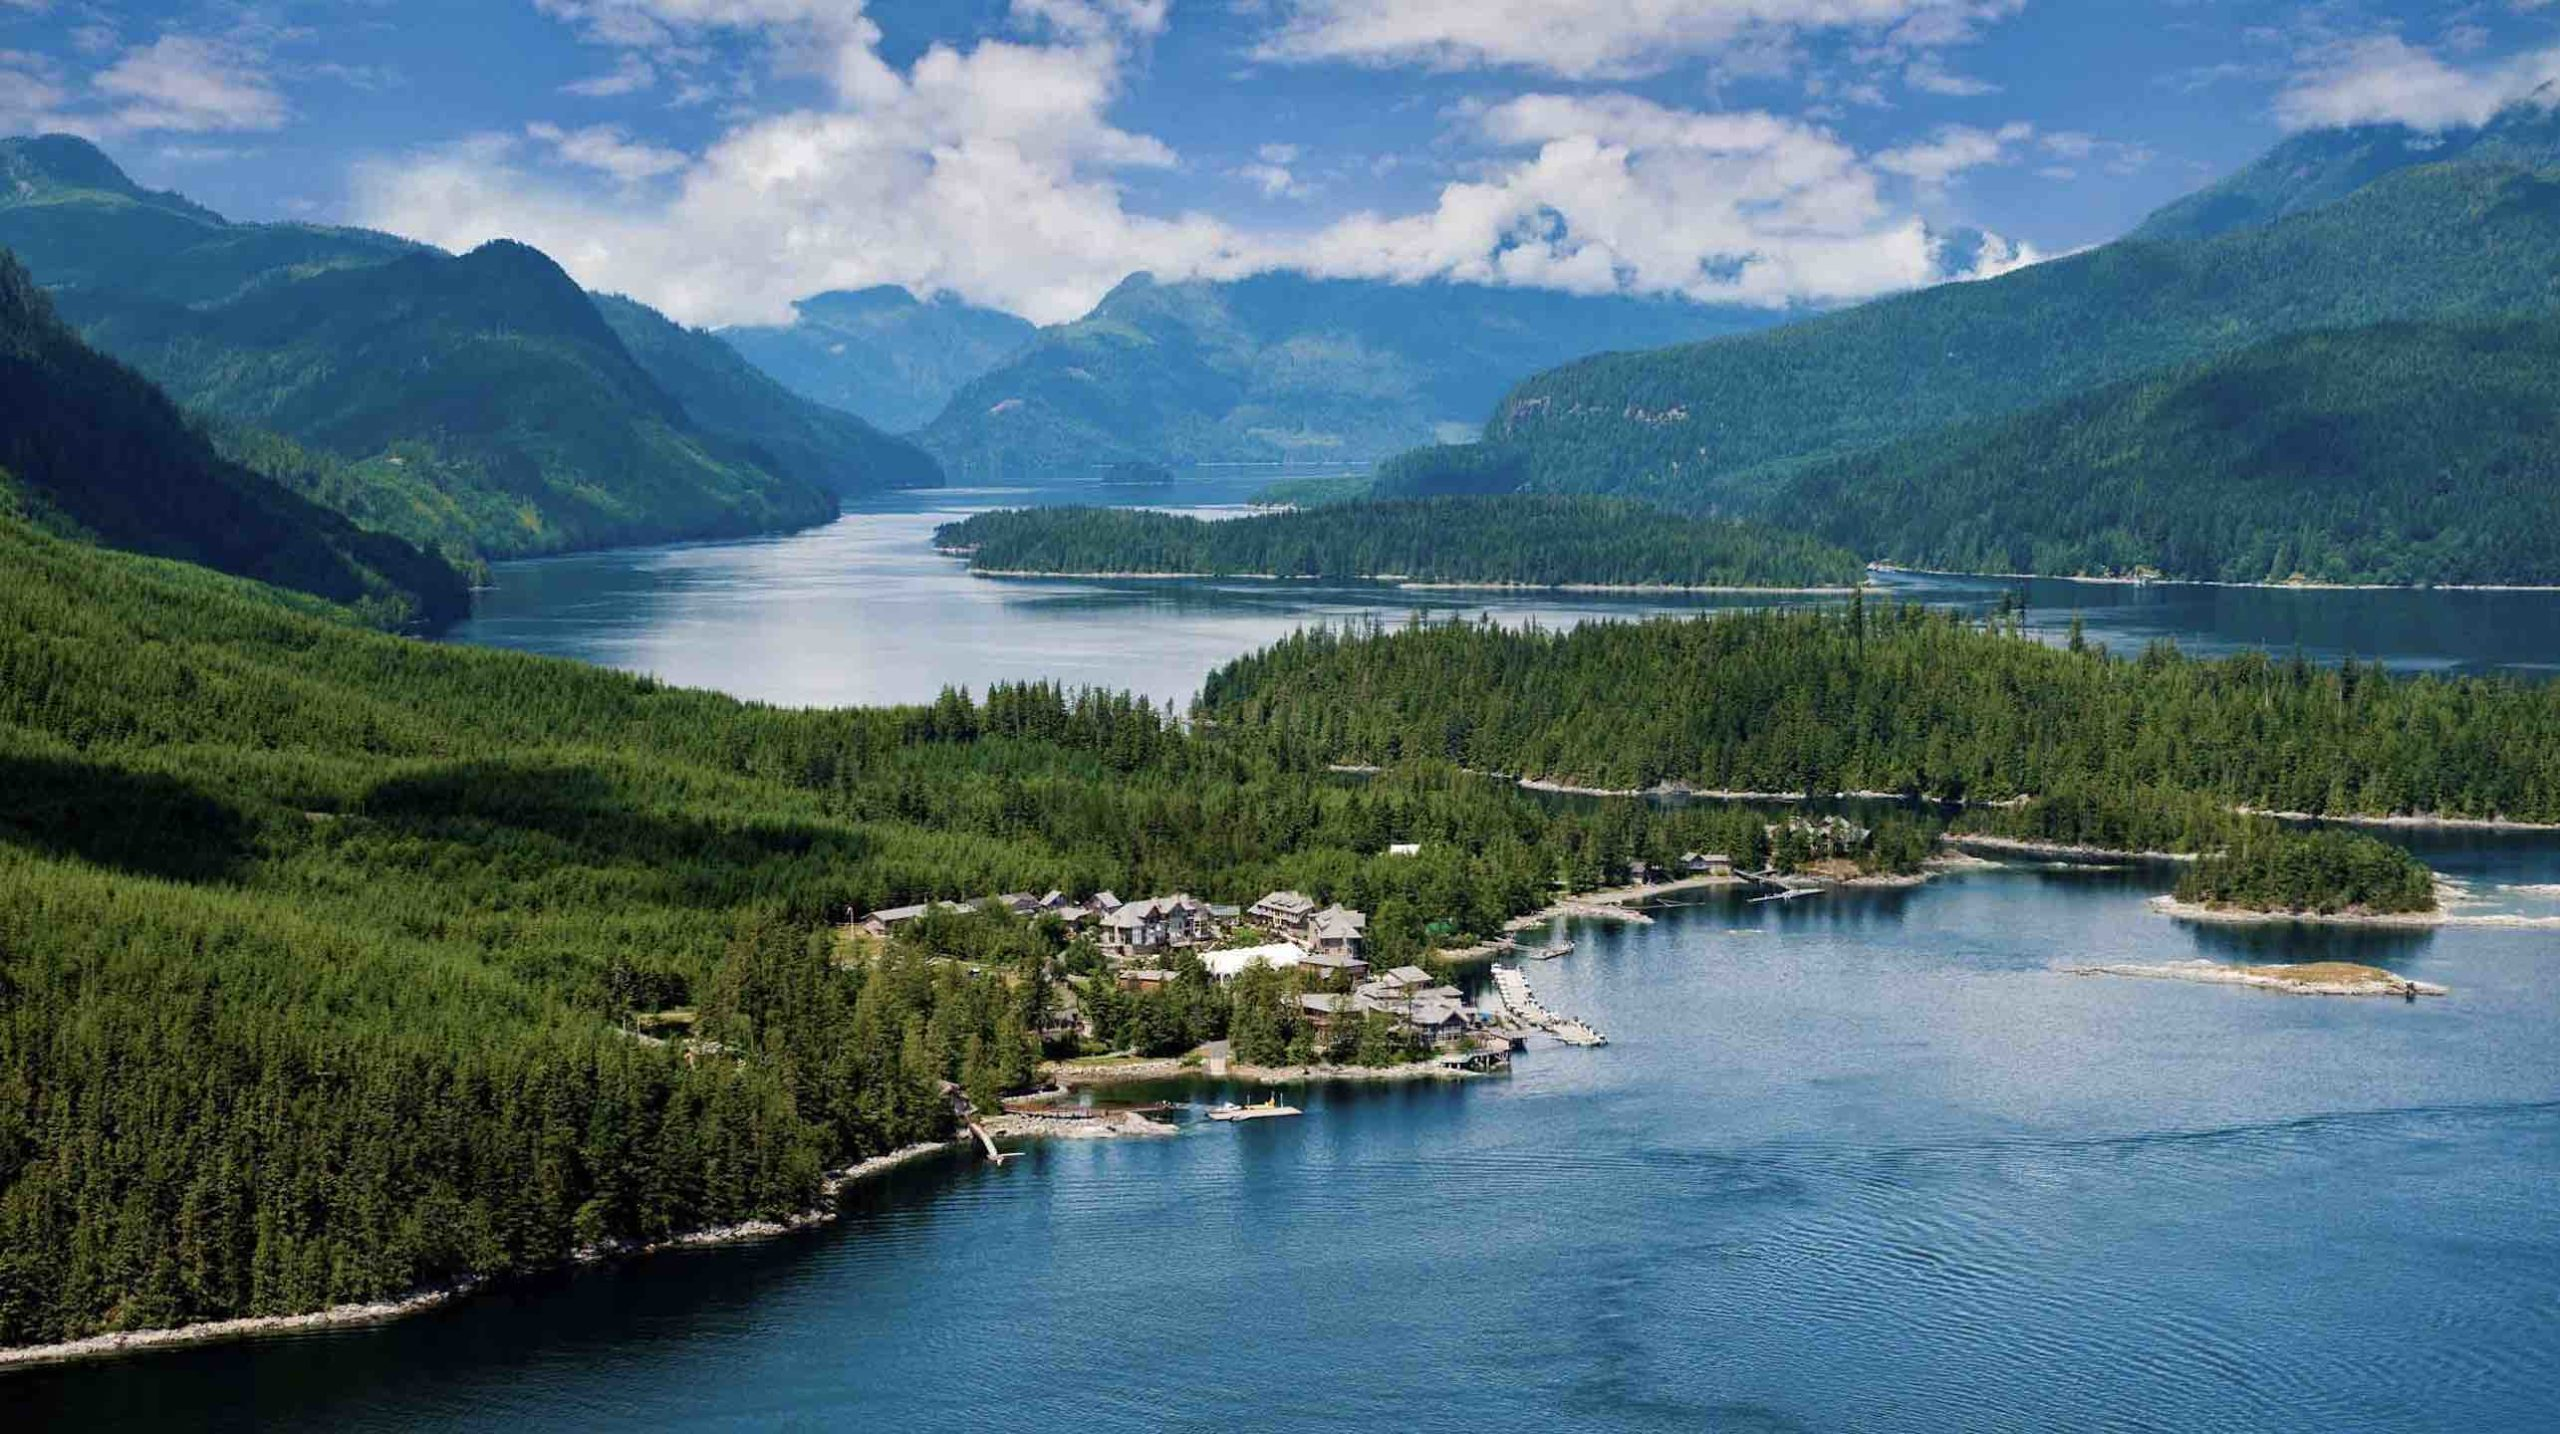 An aerial view of Sonora Resort in BC